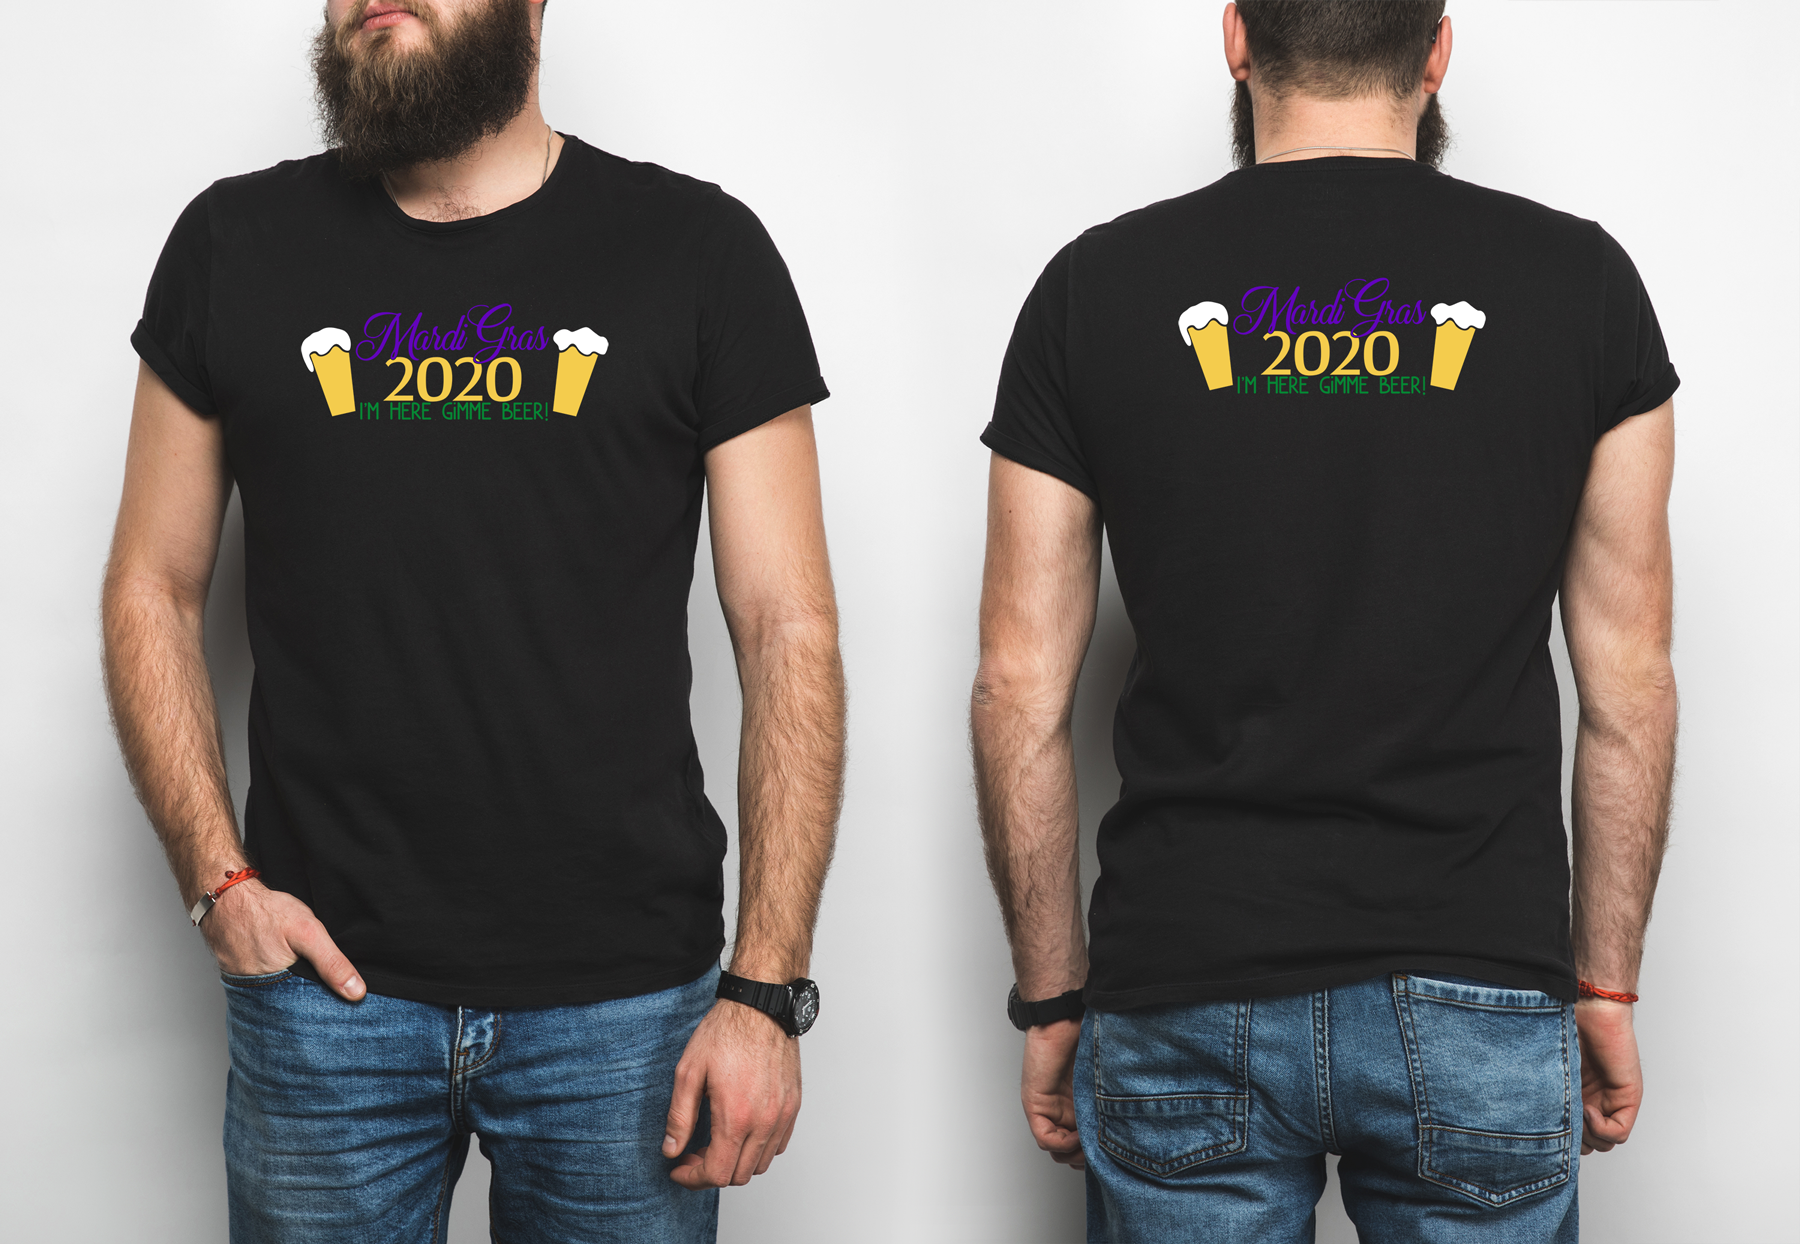 Mardi Gras 2020, I'm Here Gimme a Beer! A Mardi Gras SVG example image 4